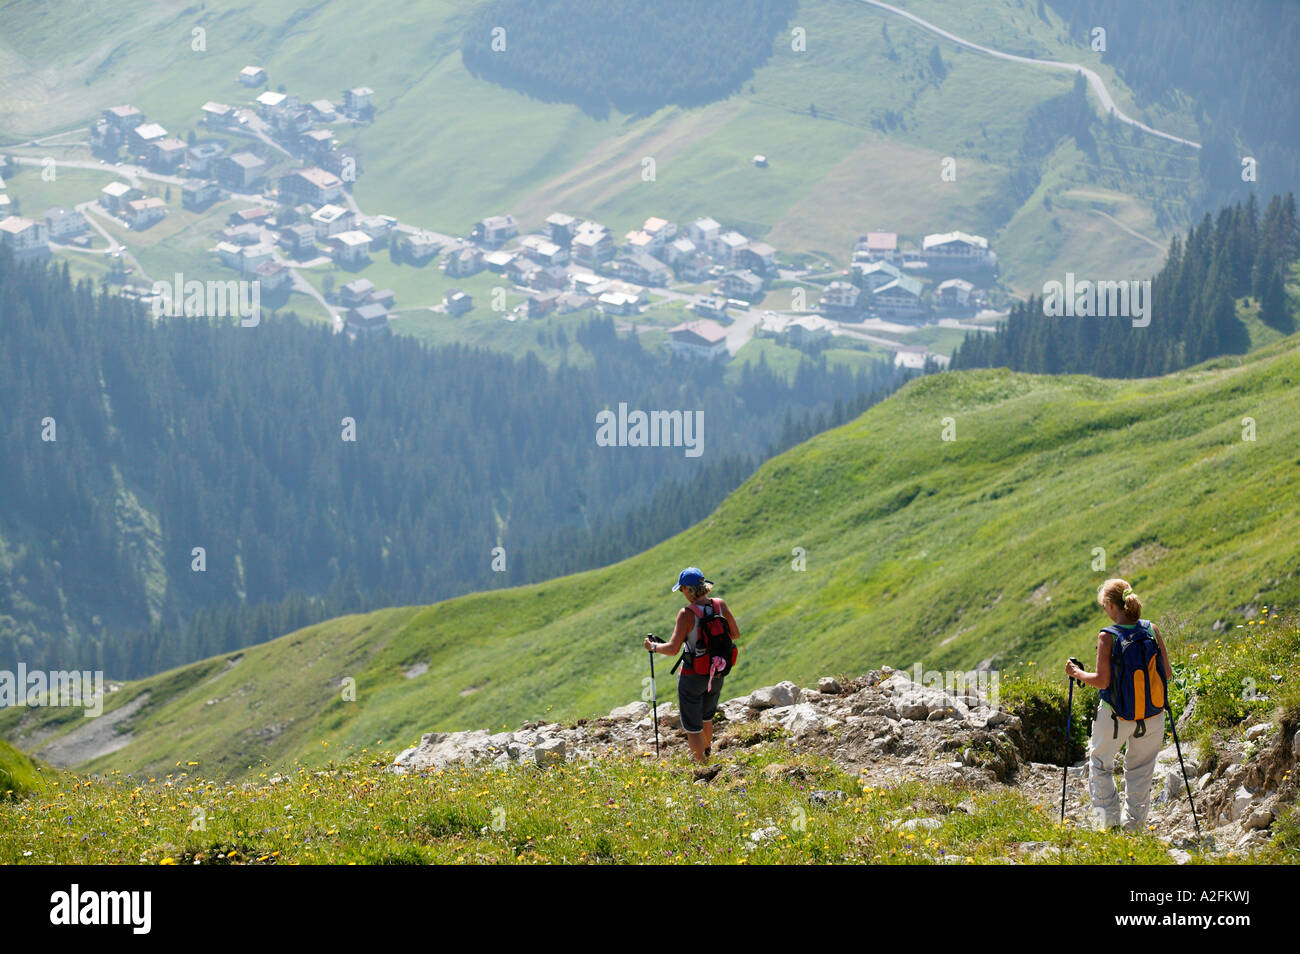 Two people hiking in mountains - Stock Image